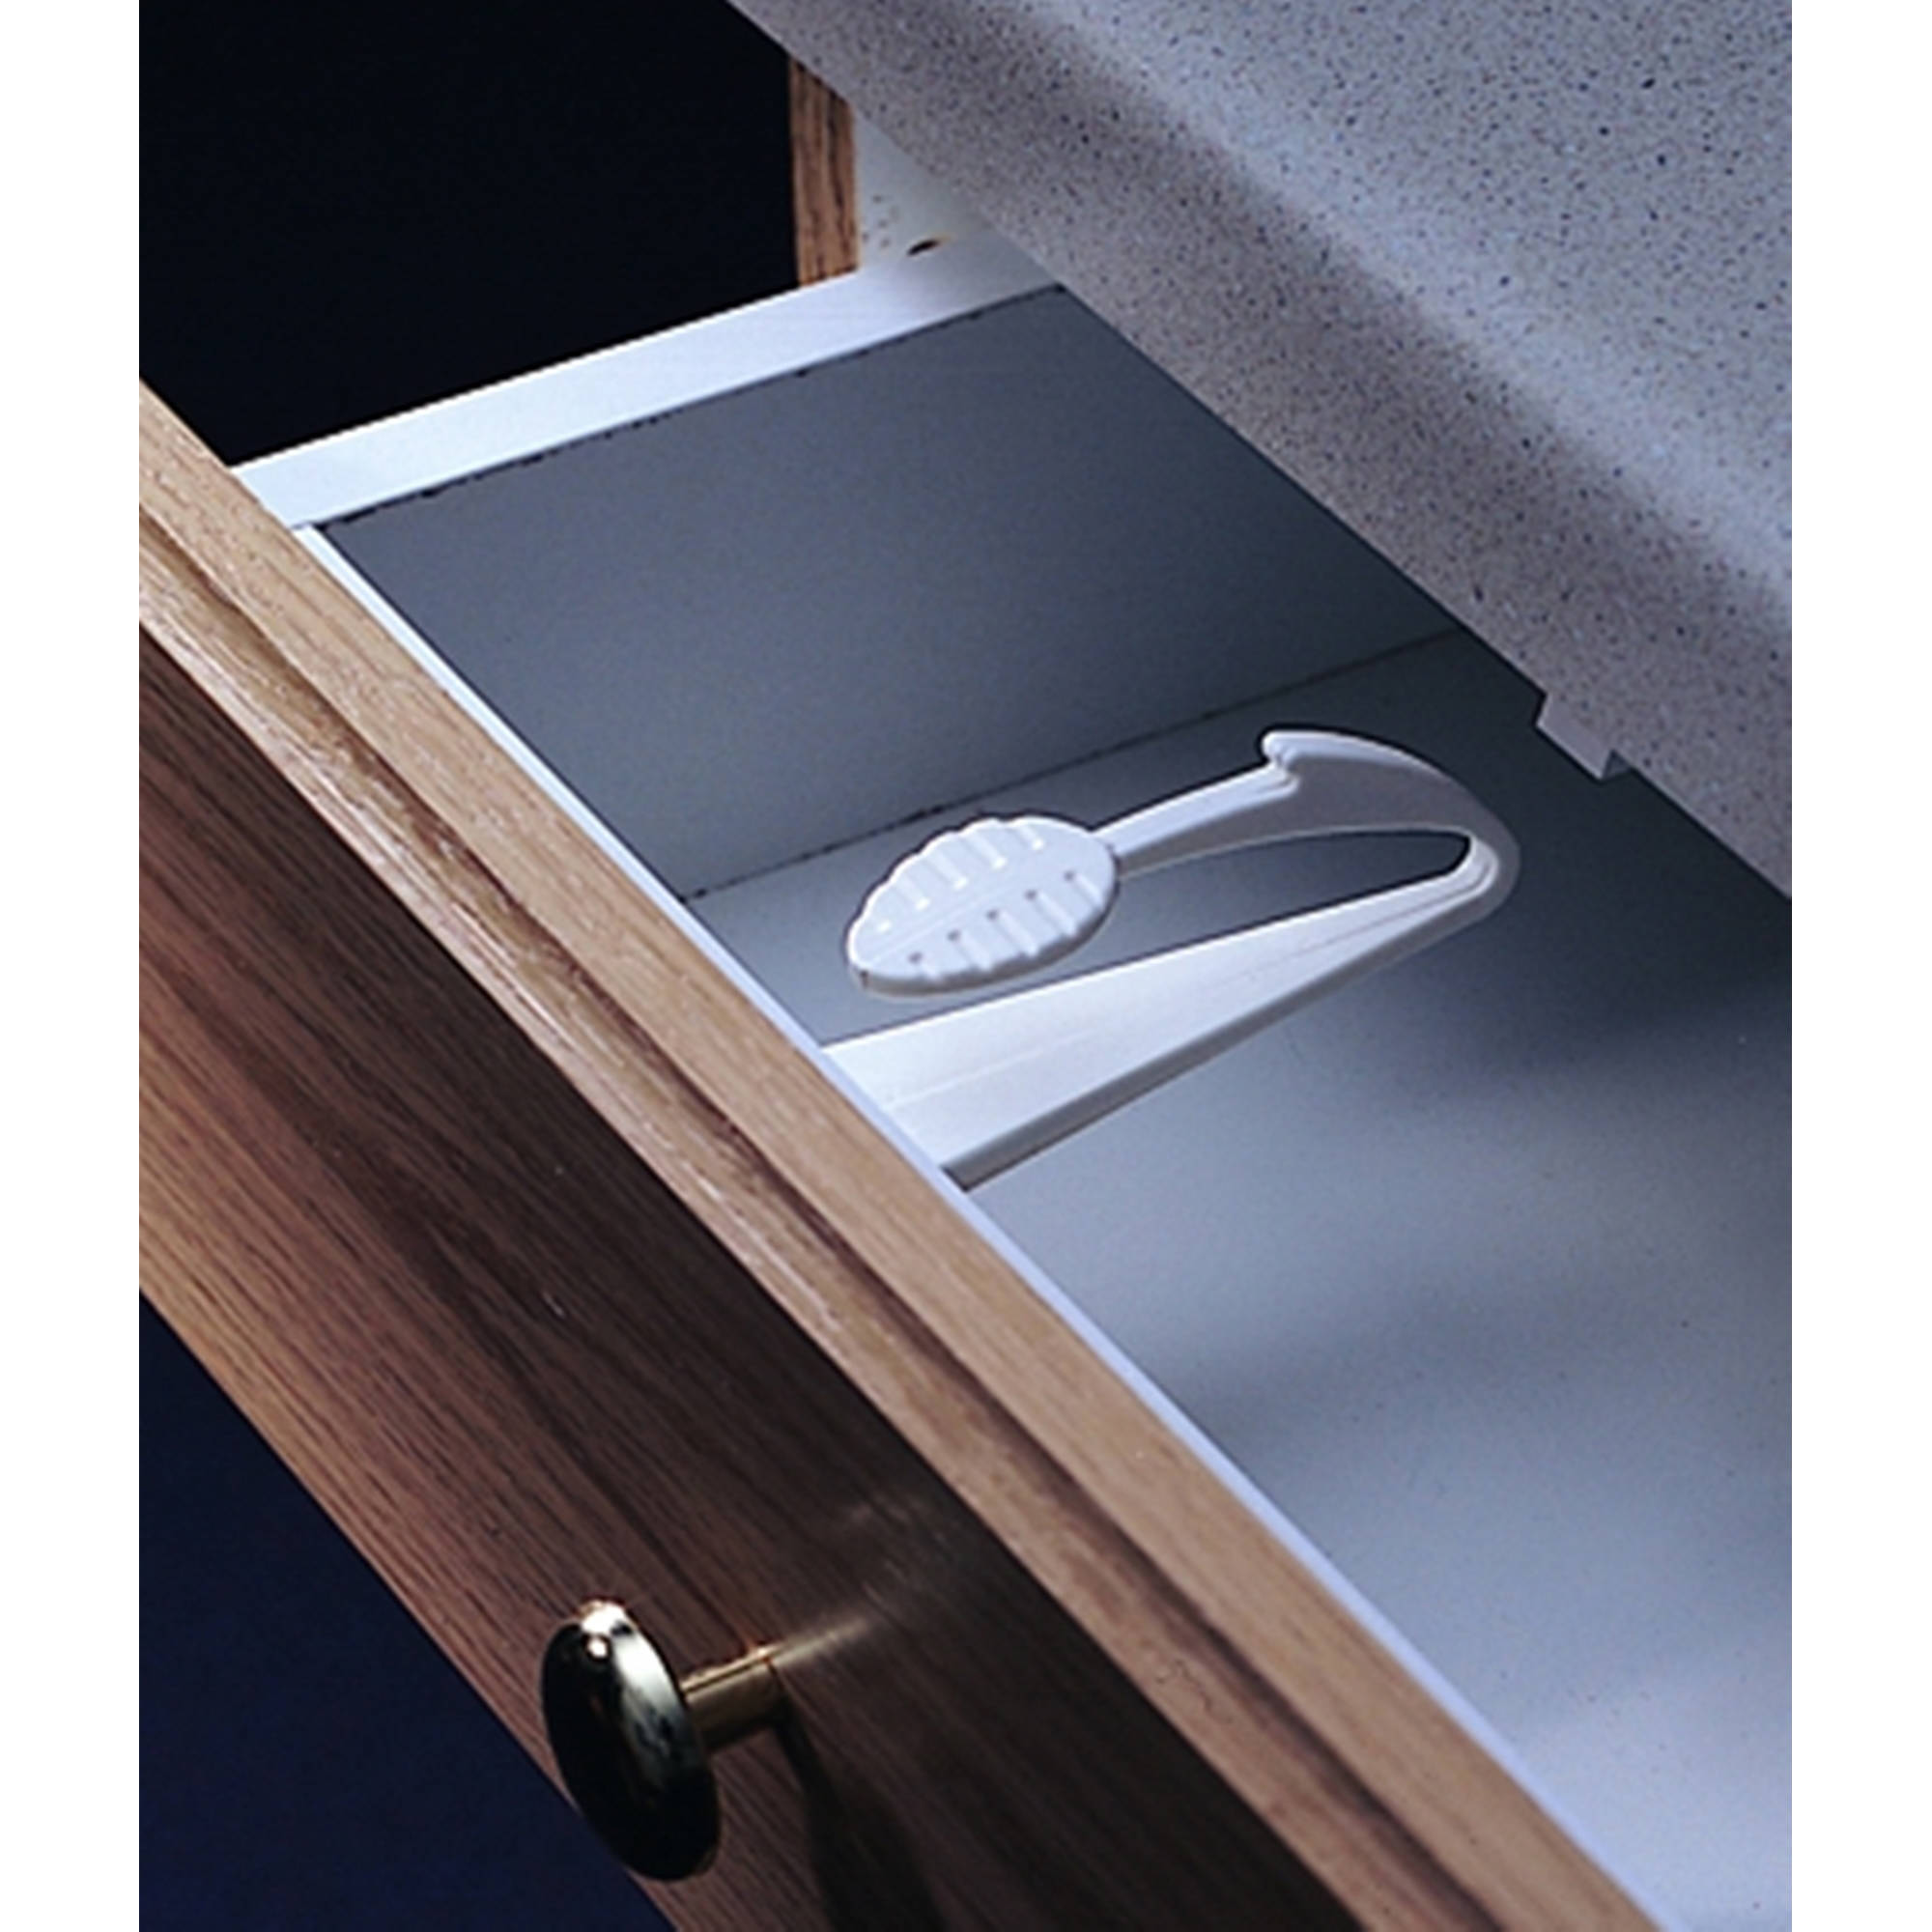 KidCo Adhesive Mount Cabinet and Drawer Lock, 3pk